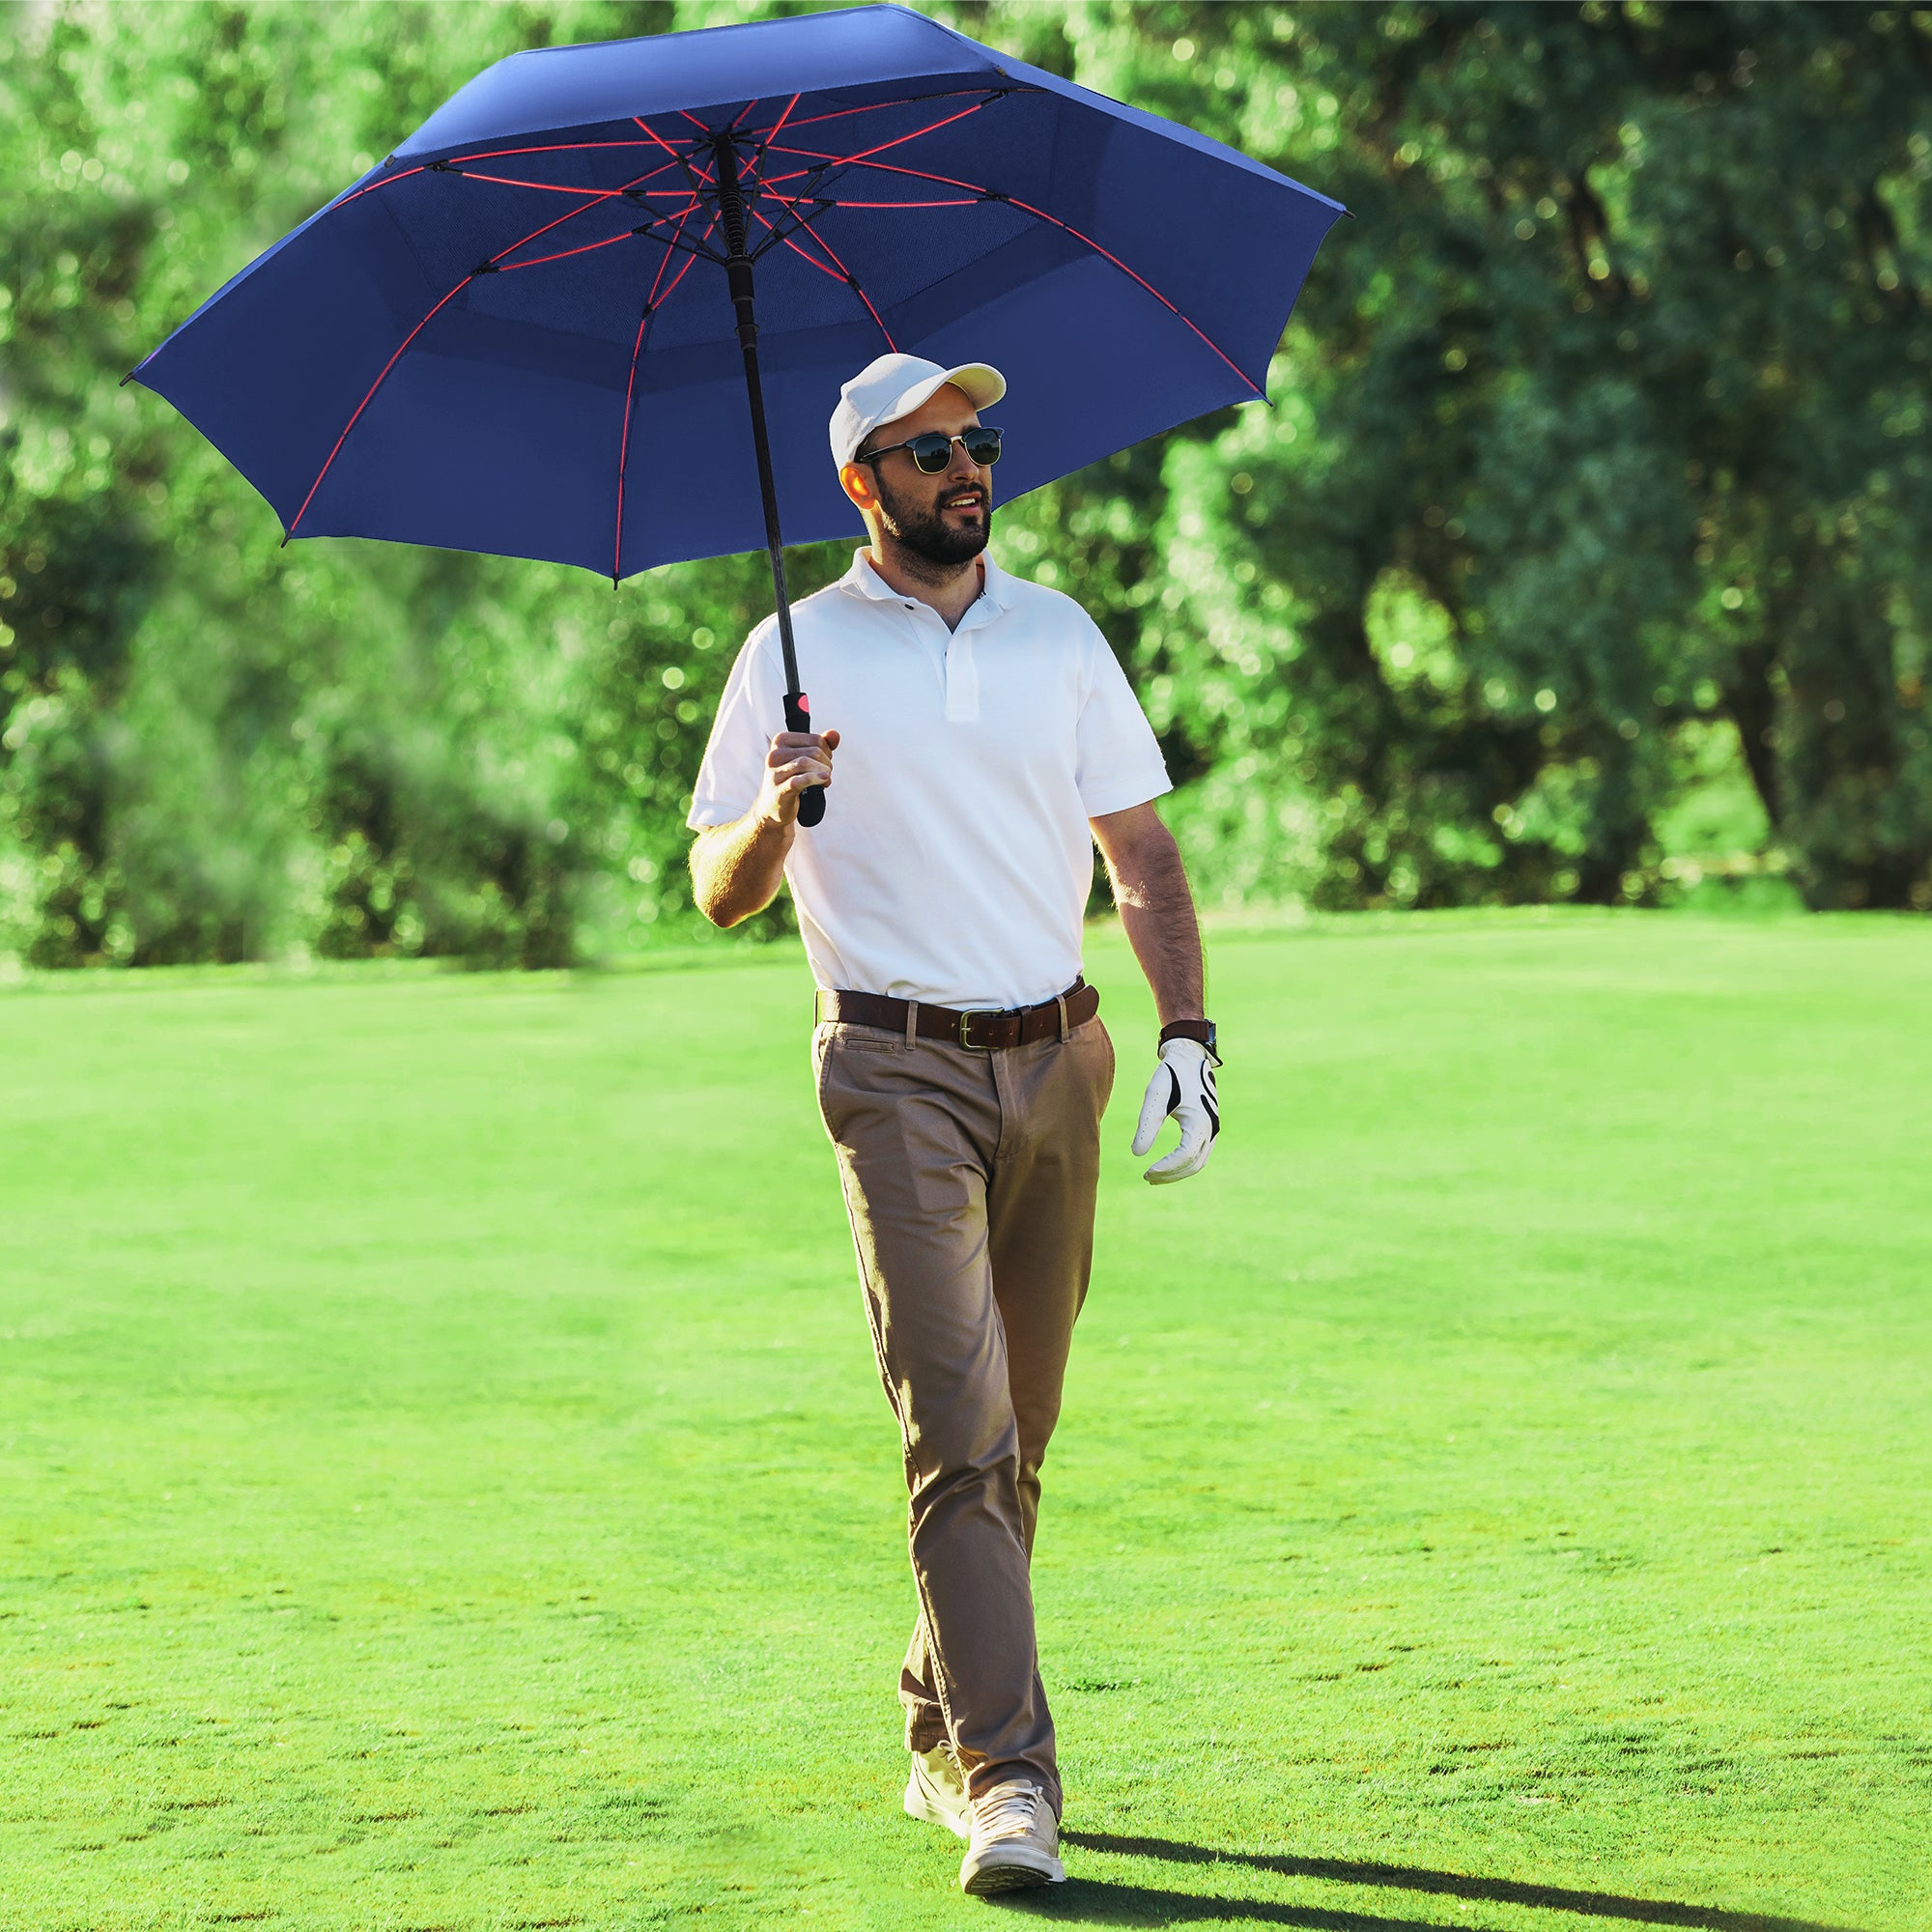 Golf No Matter the Weather with the Repel Golf Umbrella